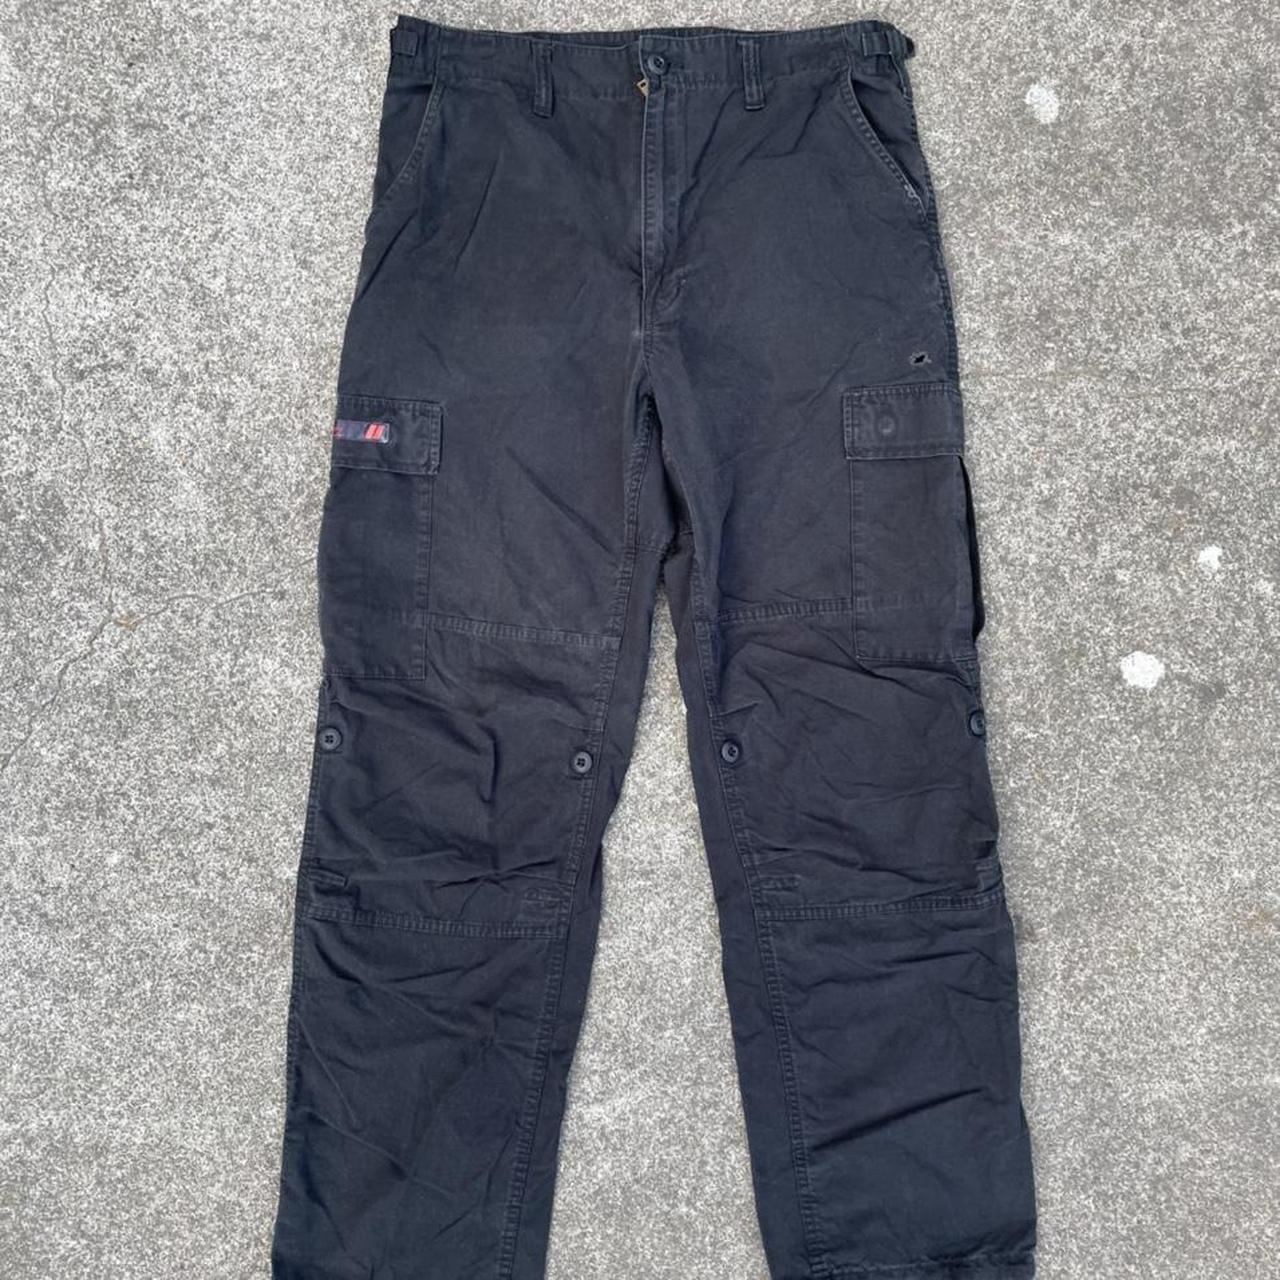 Product Image 1 - Wtaps tactical cargo pants Condition: worn